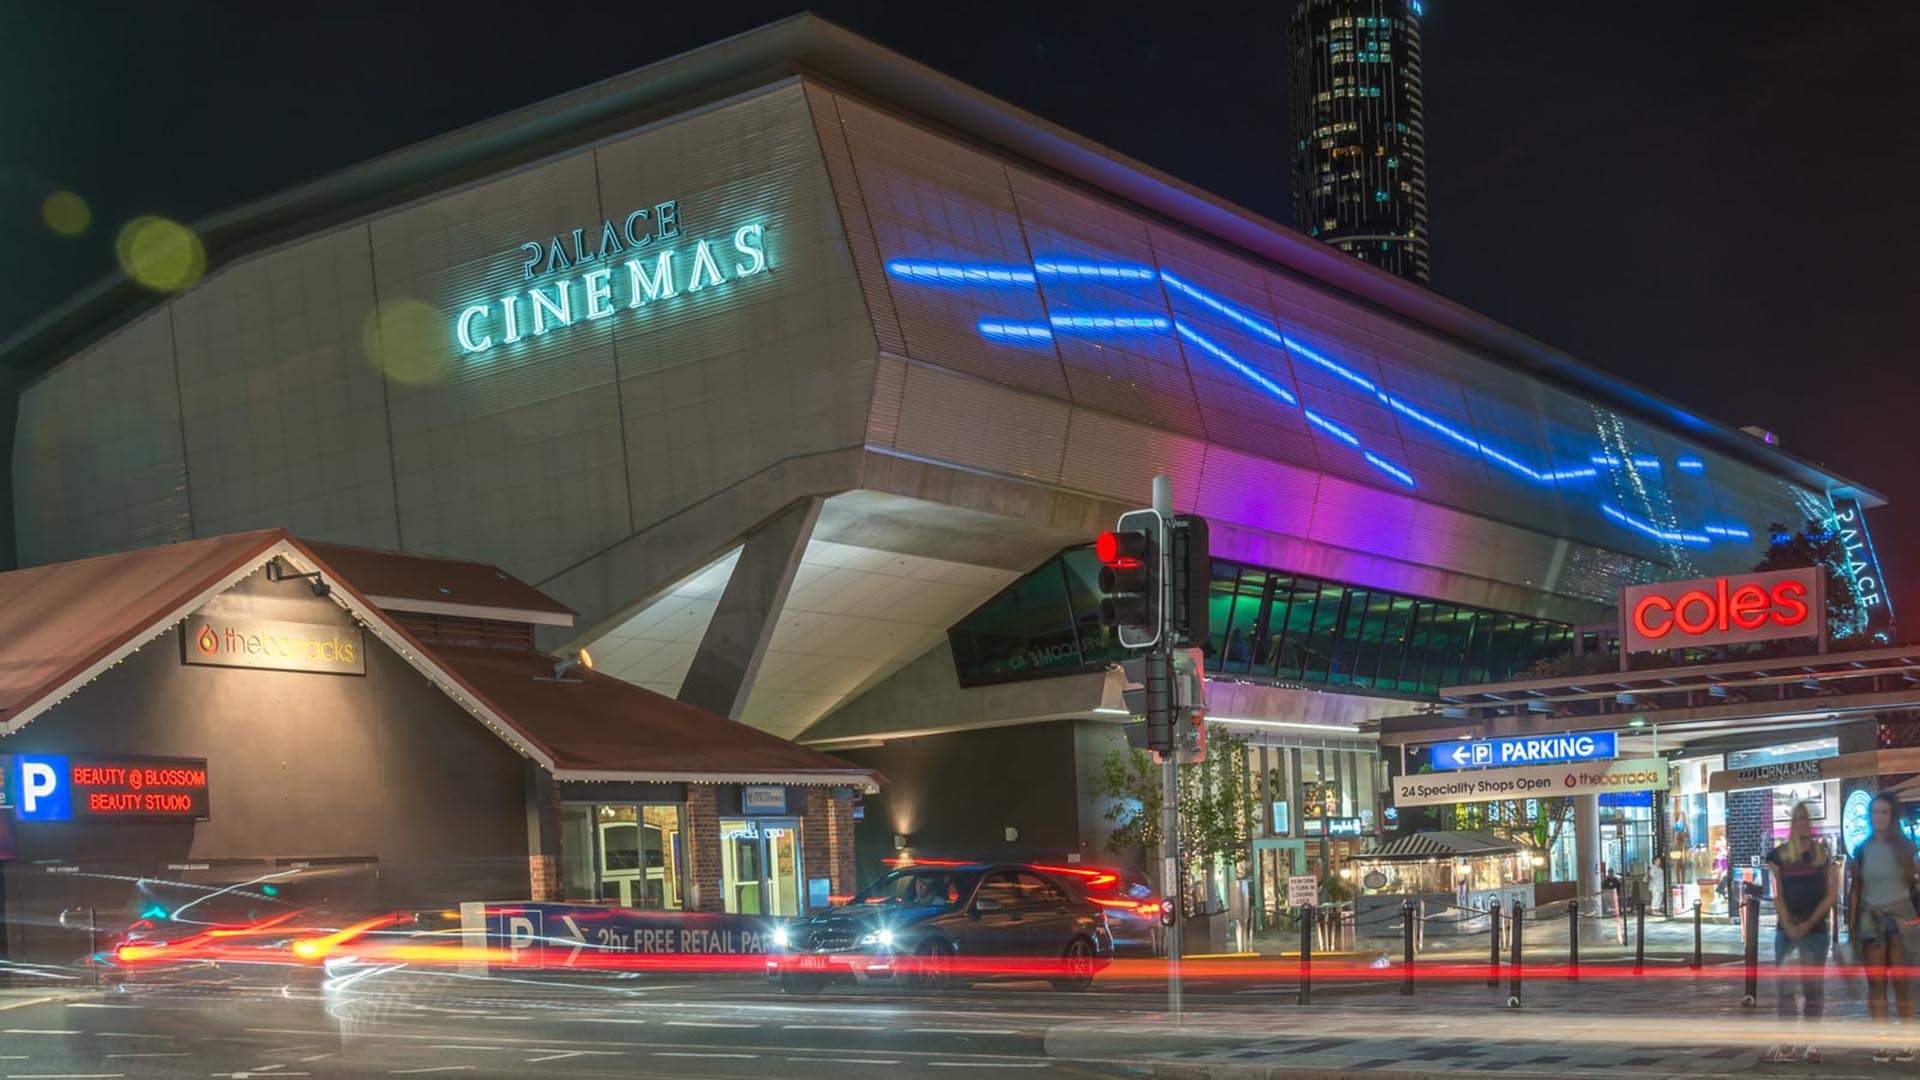 We've Giving Away Five Double Passes to the Cinema for Your Next Date Night